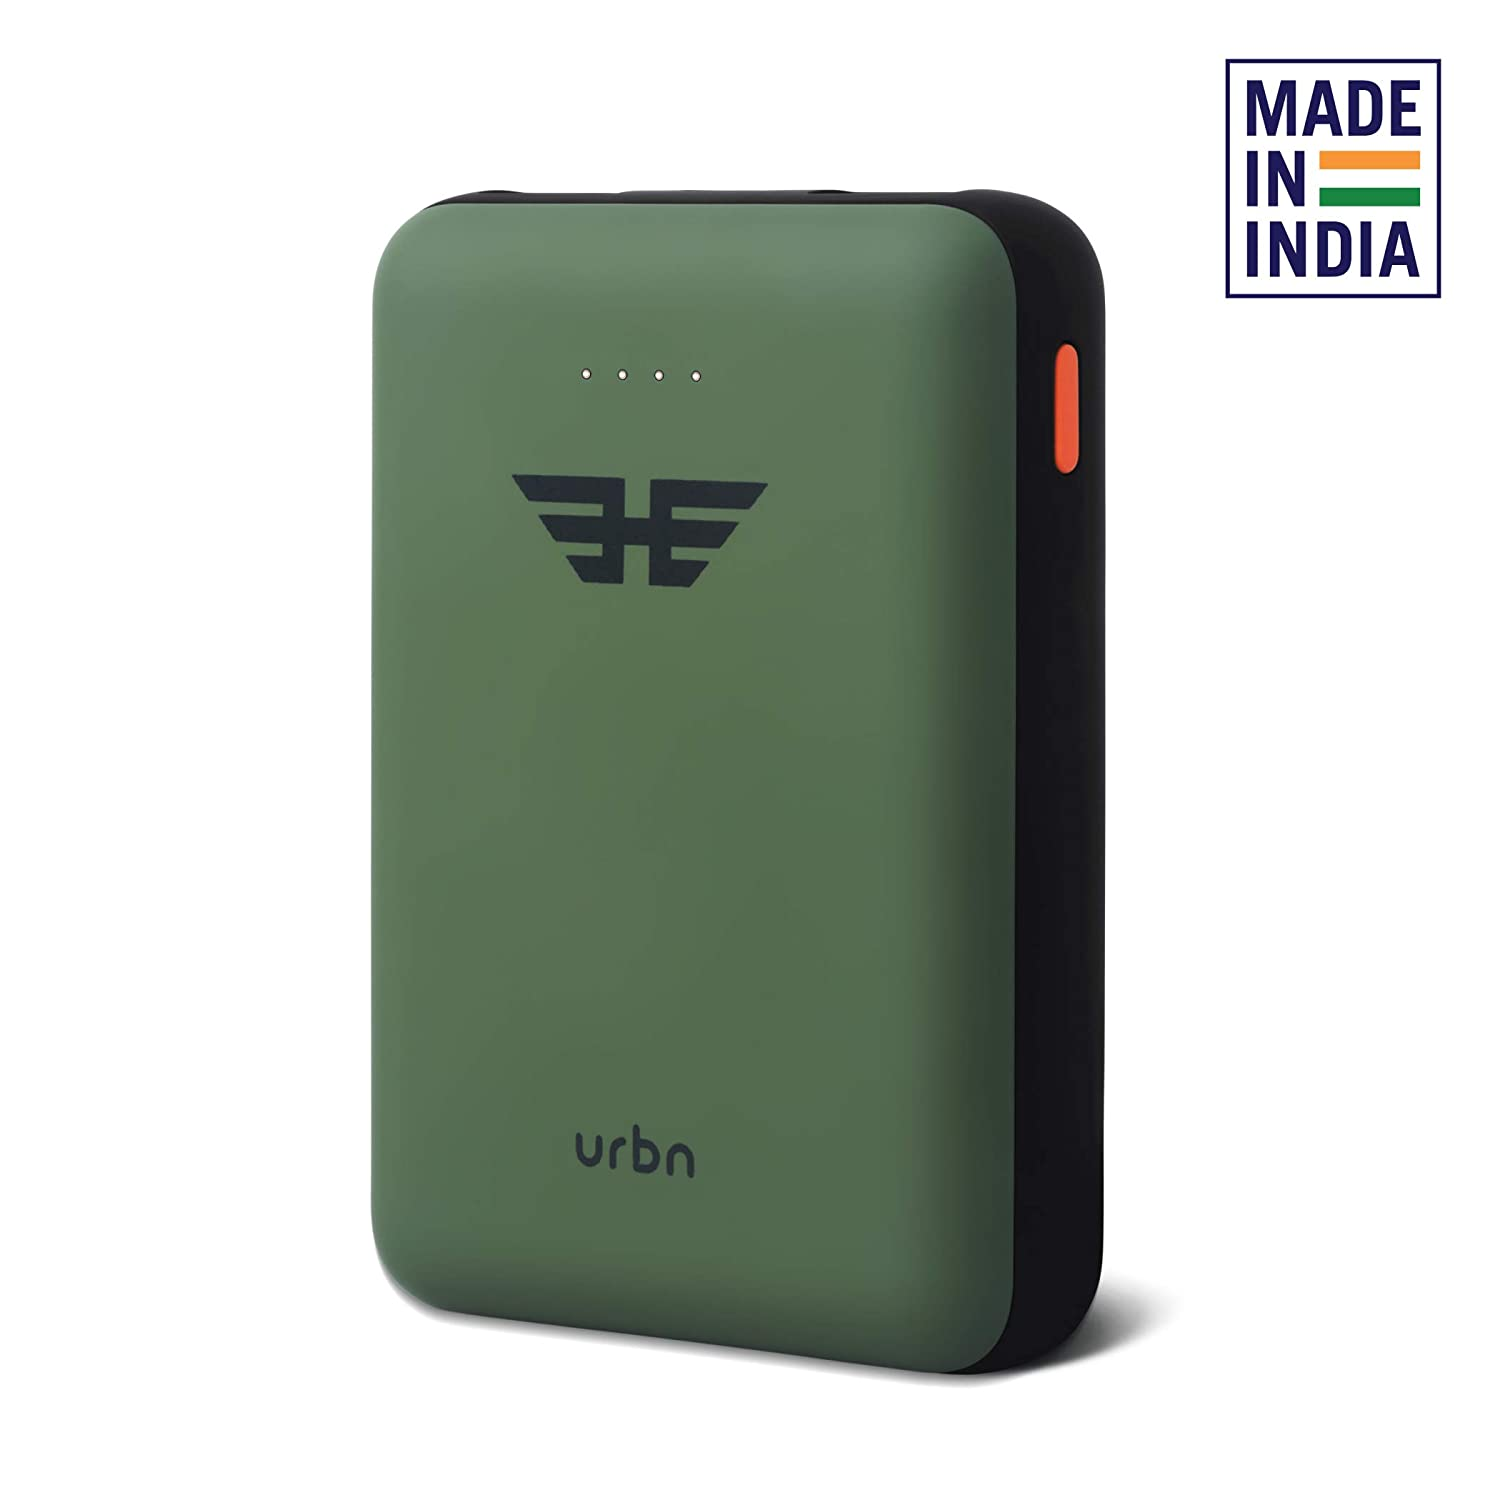 URBN 10000 mAh Li-Polymer Heroes Power Bank Fast Charge & Ultra-Compact Slim Body